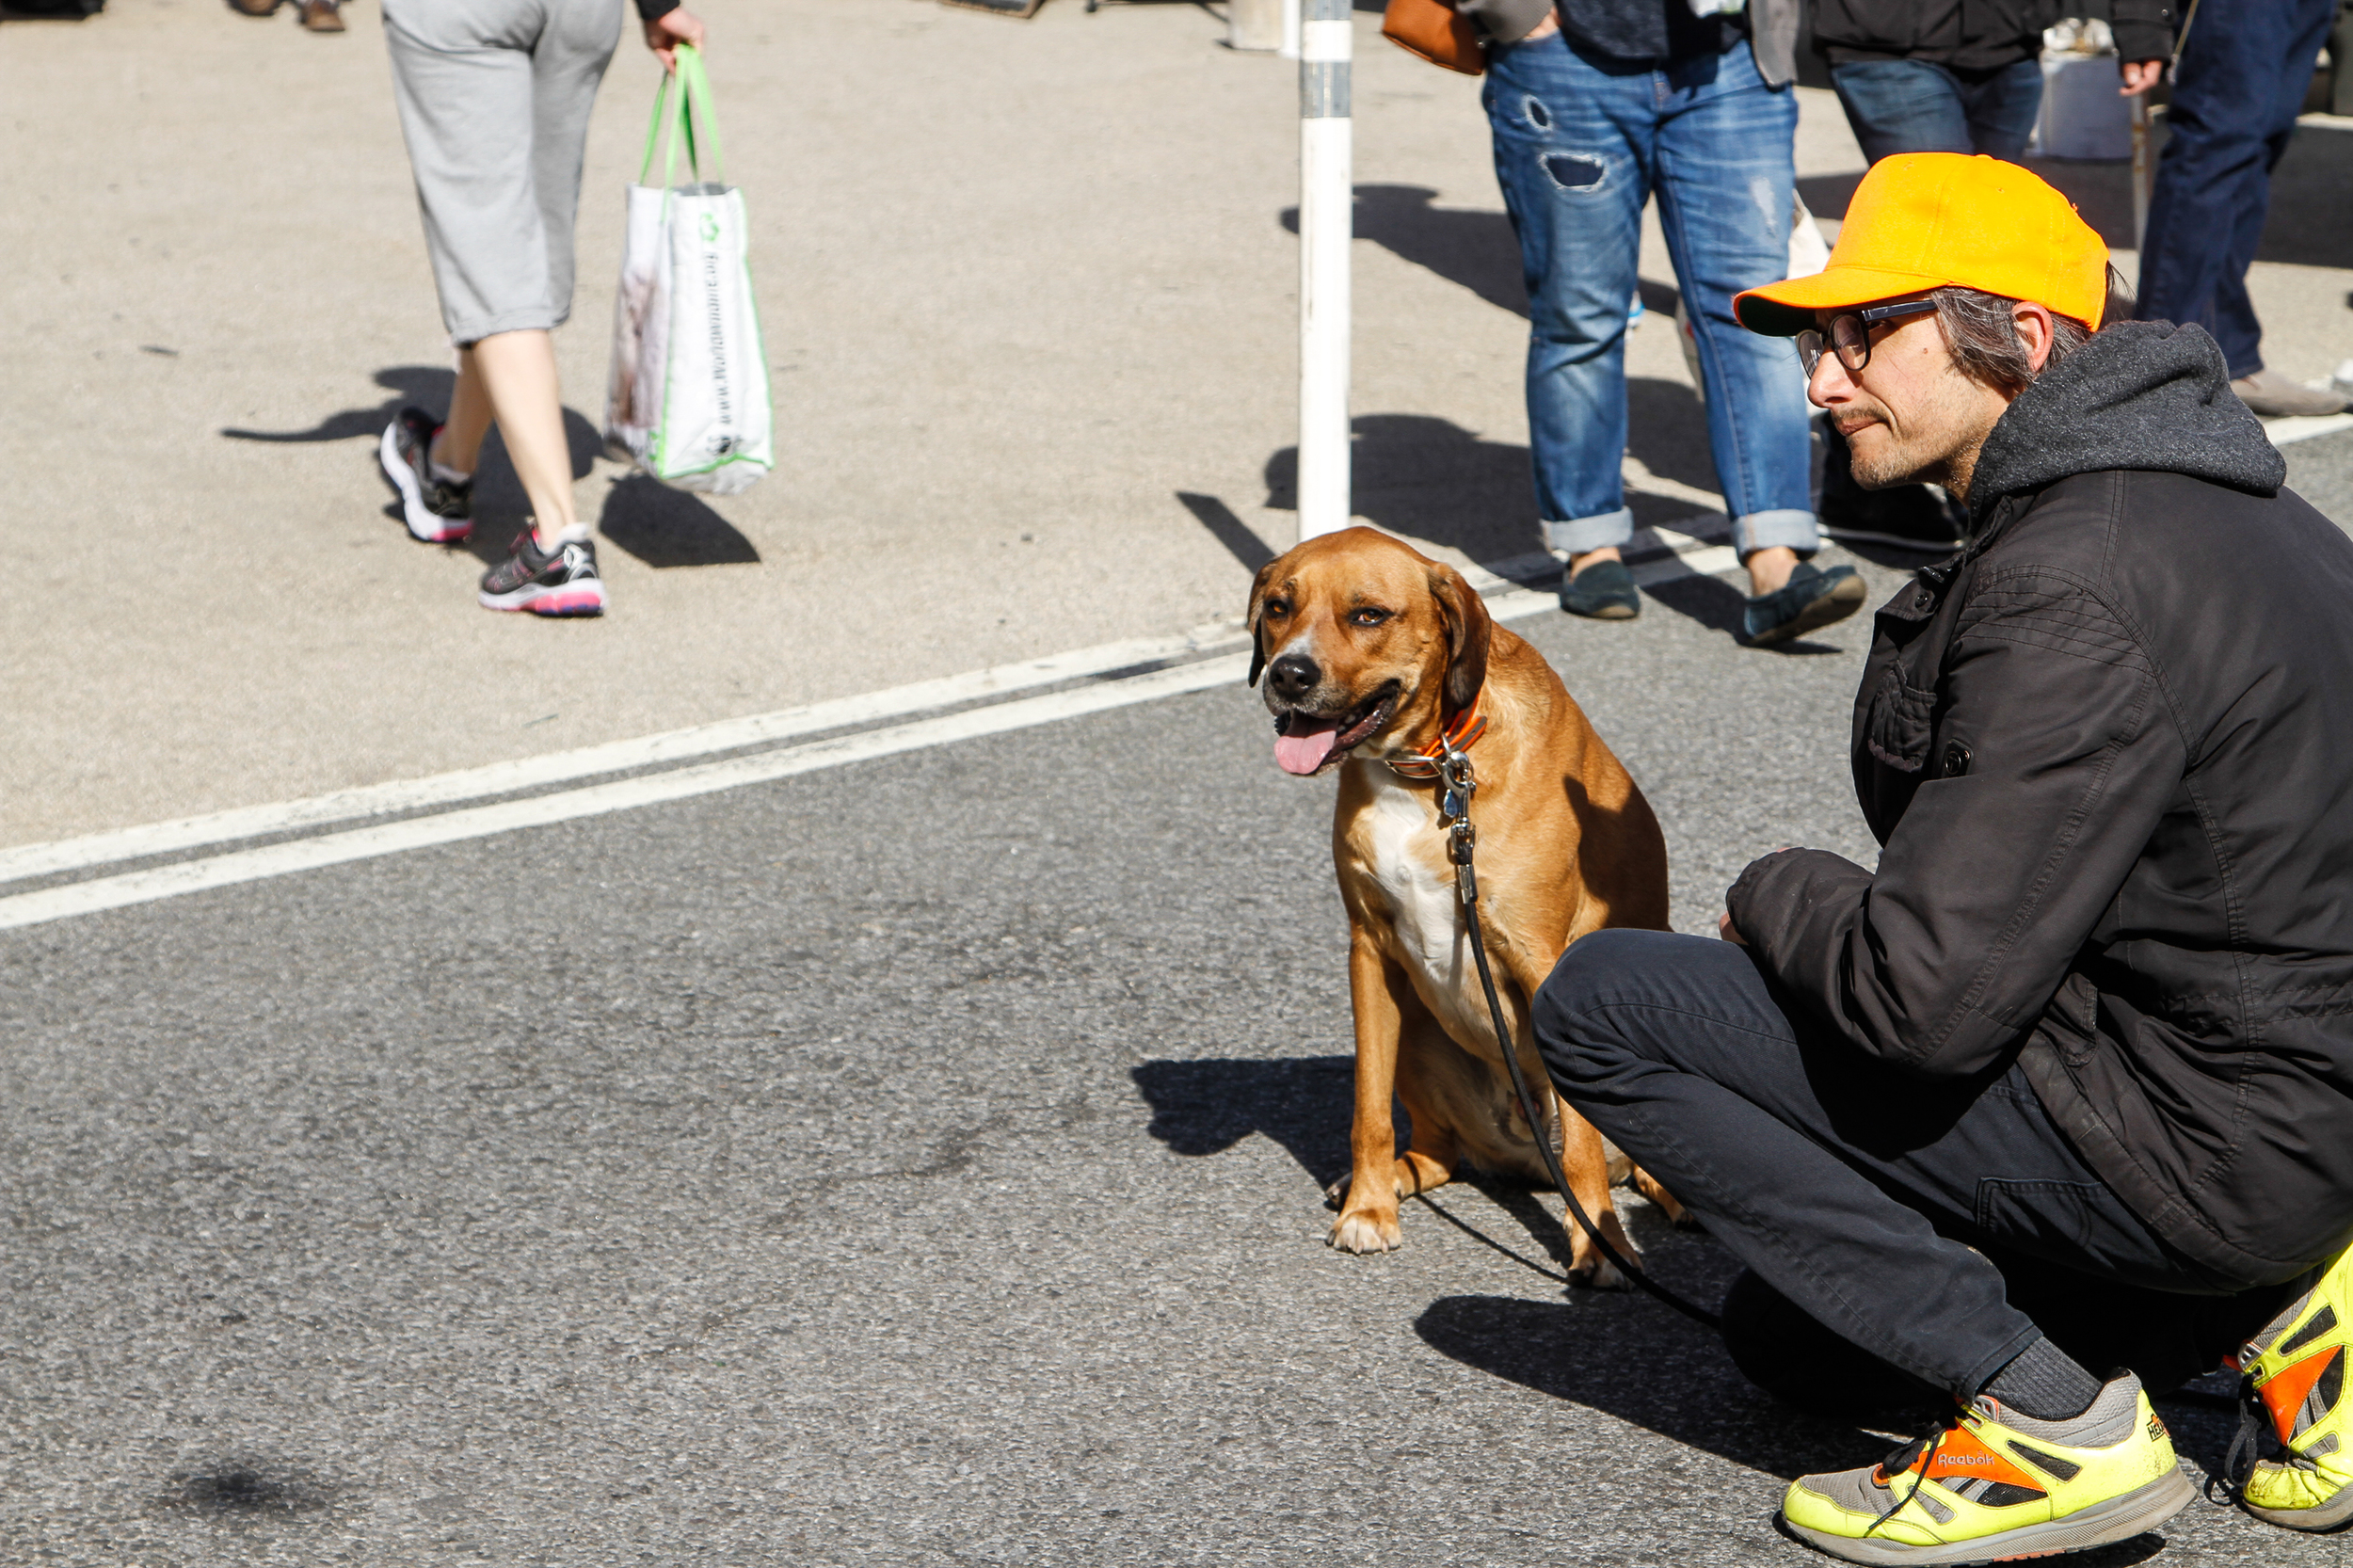 A man kneels next to his dog at the Prospect Park Farmer's Market (April 25, 2015)